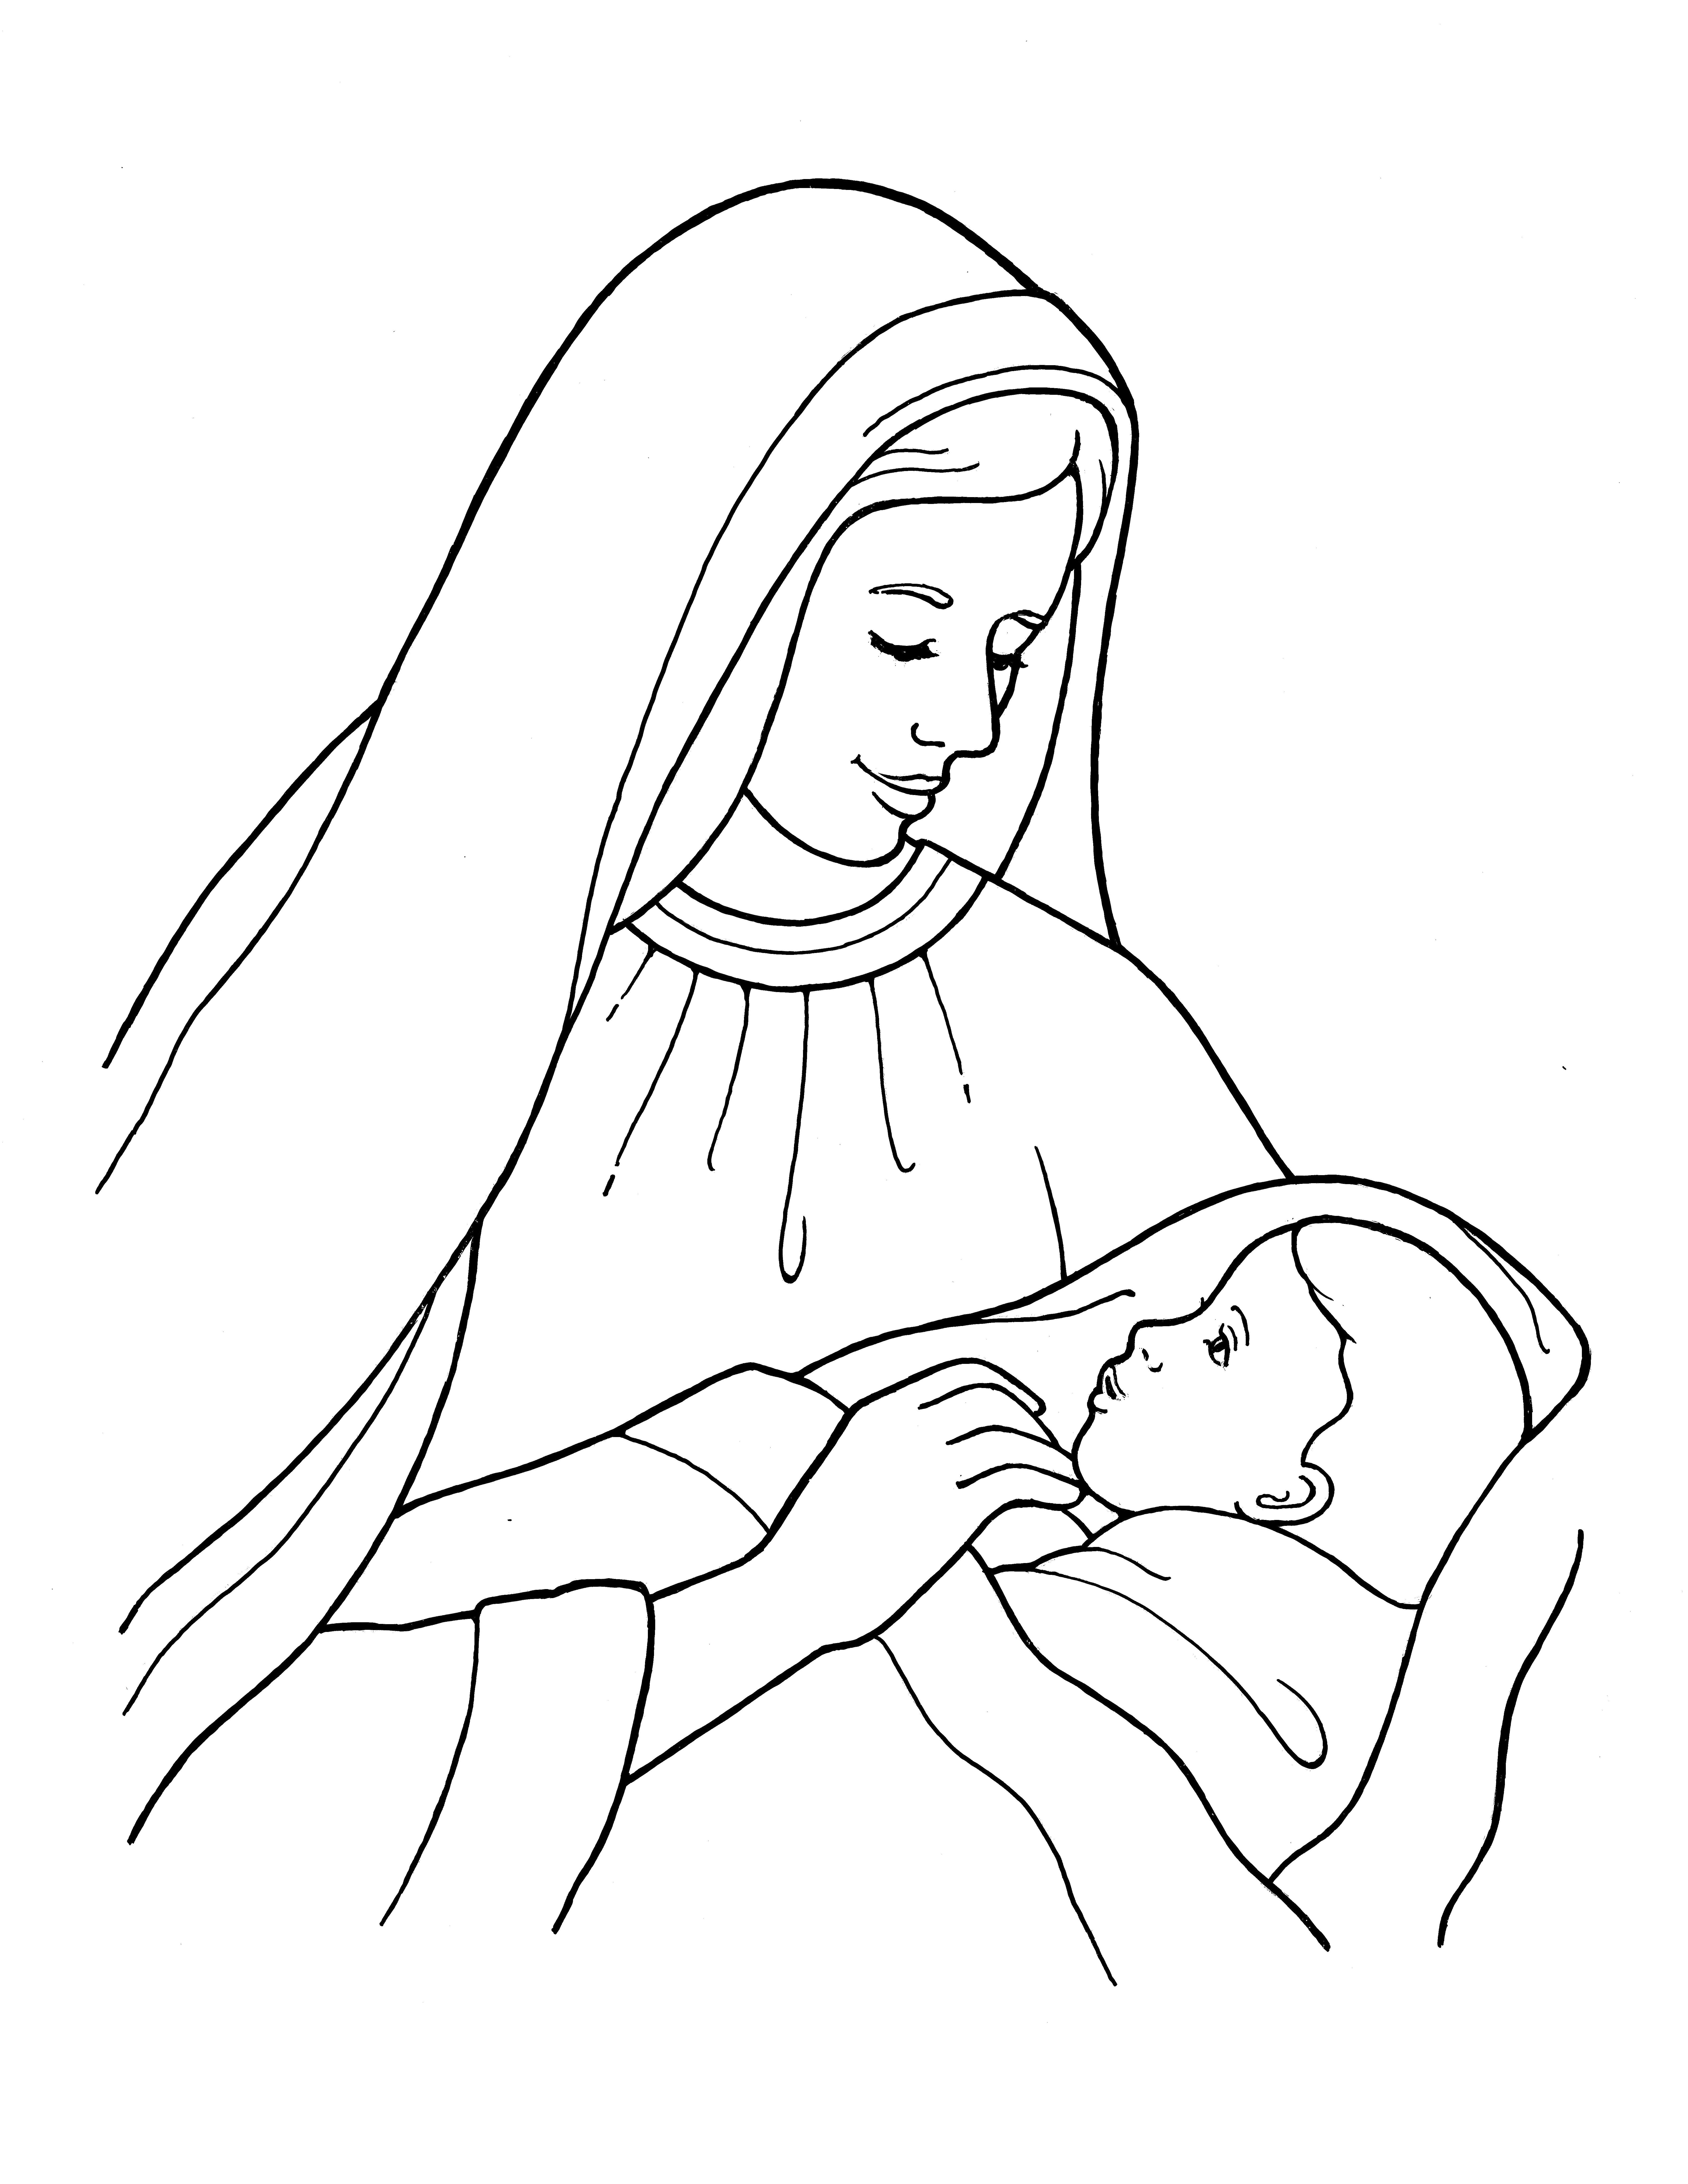 An illustration of Mary holding the baby Jesus, from the nursery manual Behold Your Little Ones (2008), page 127.